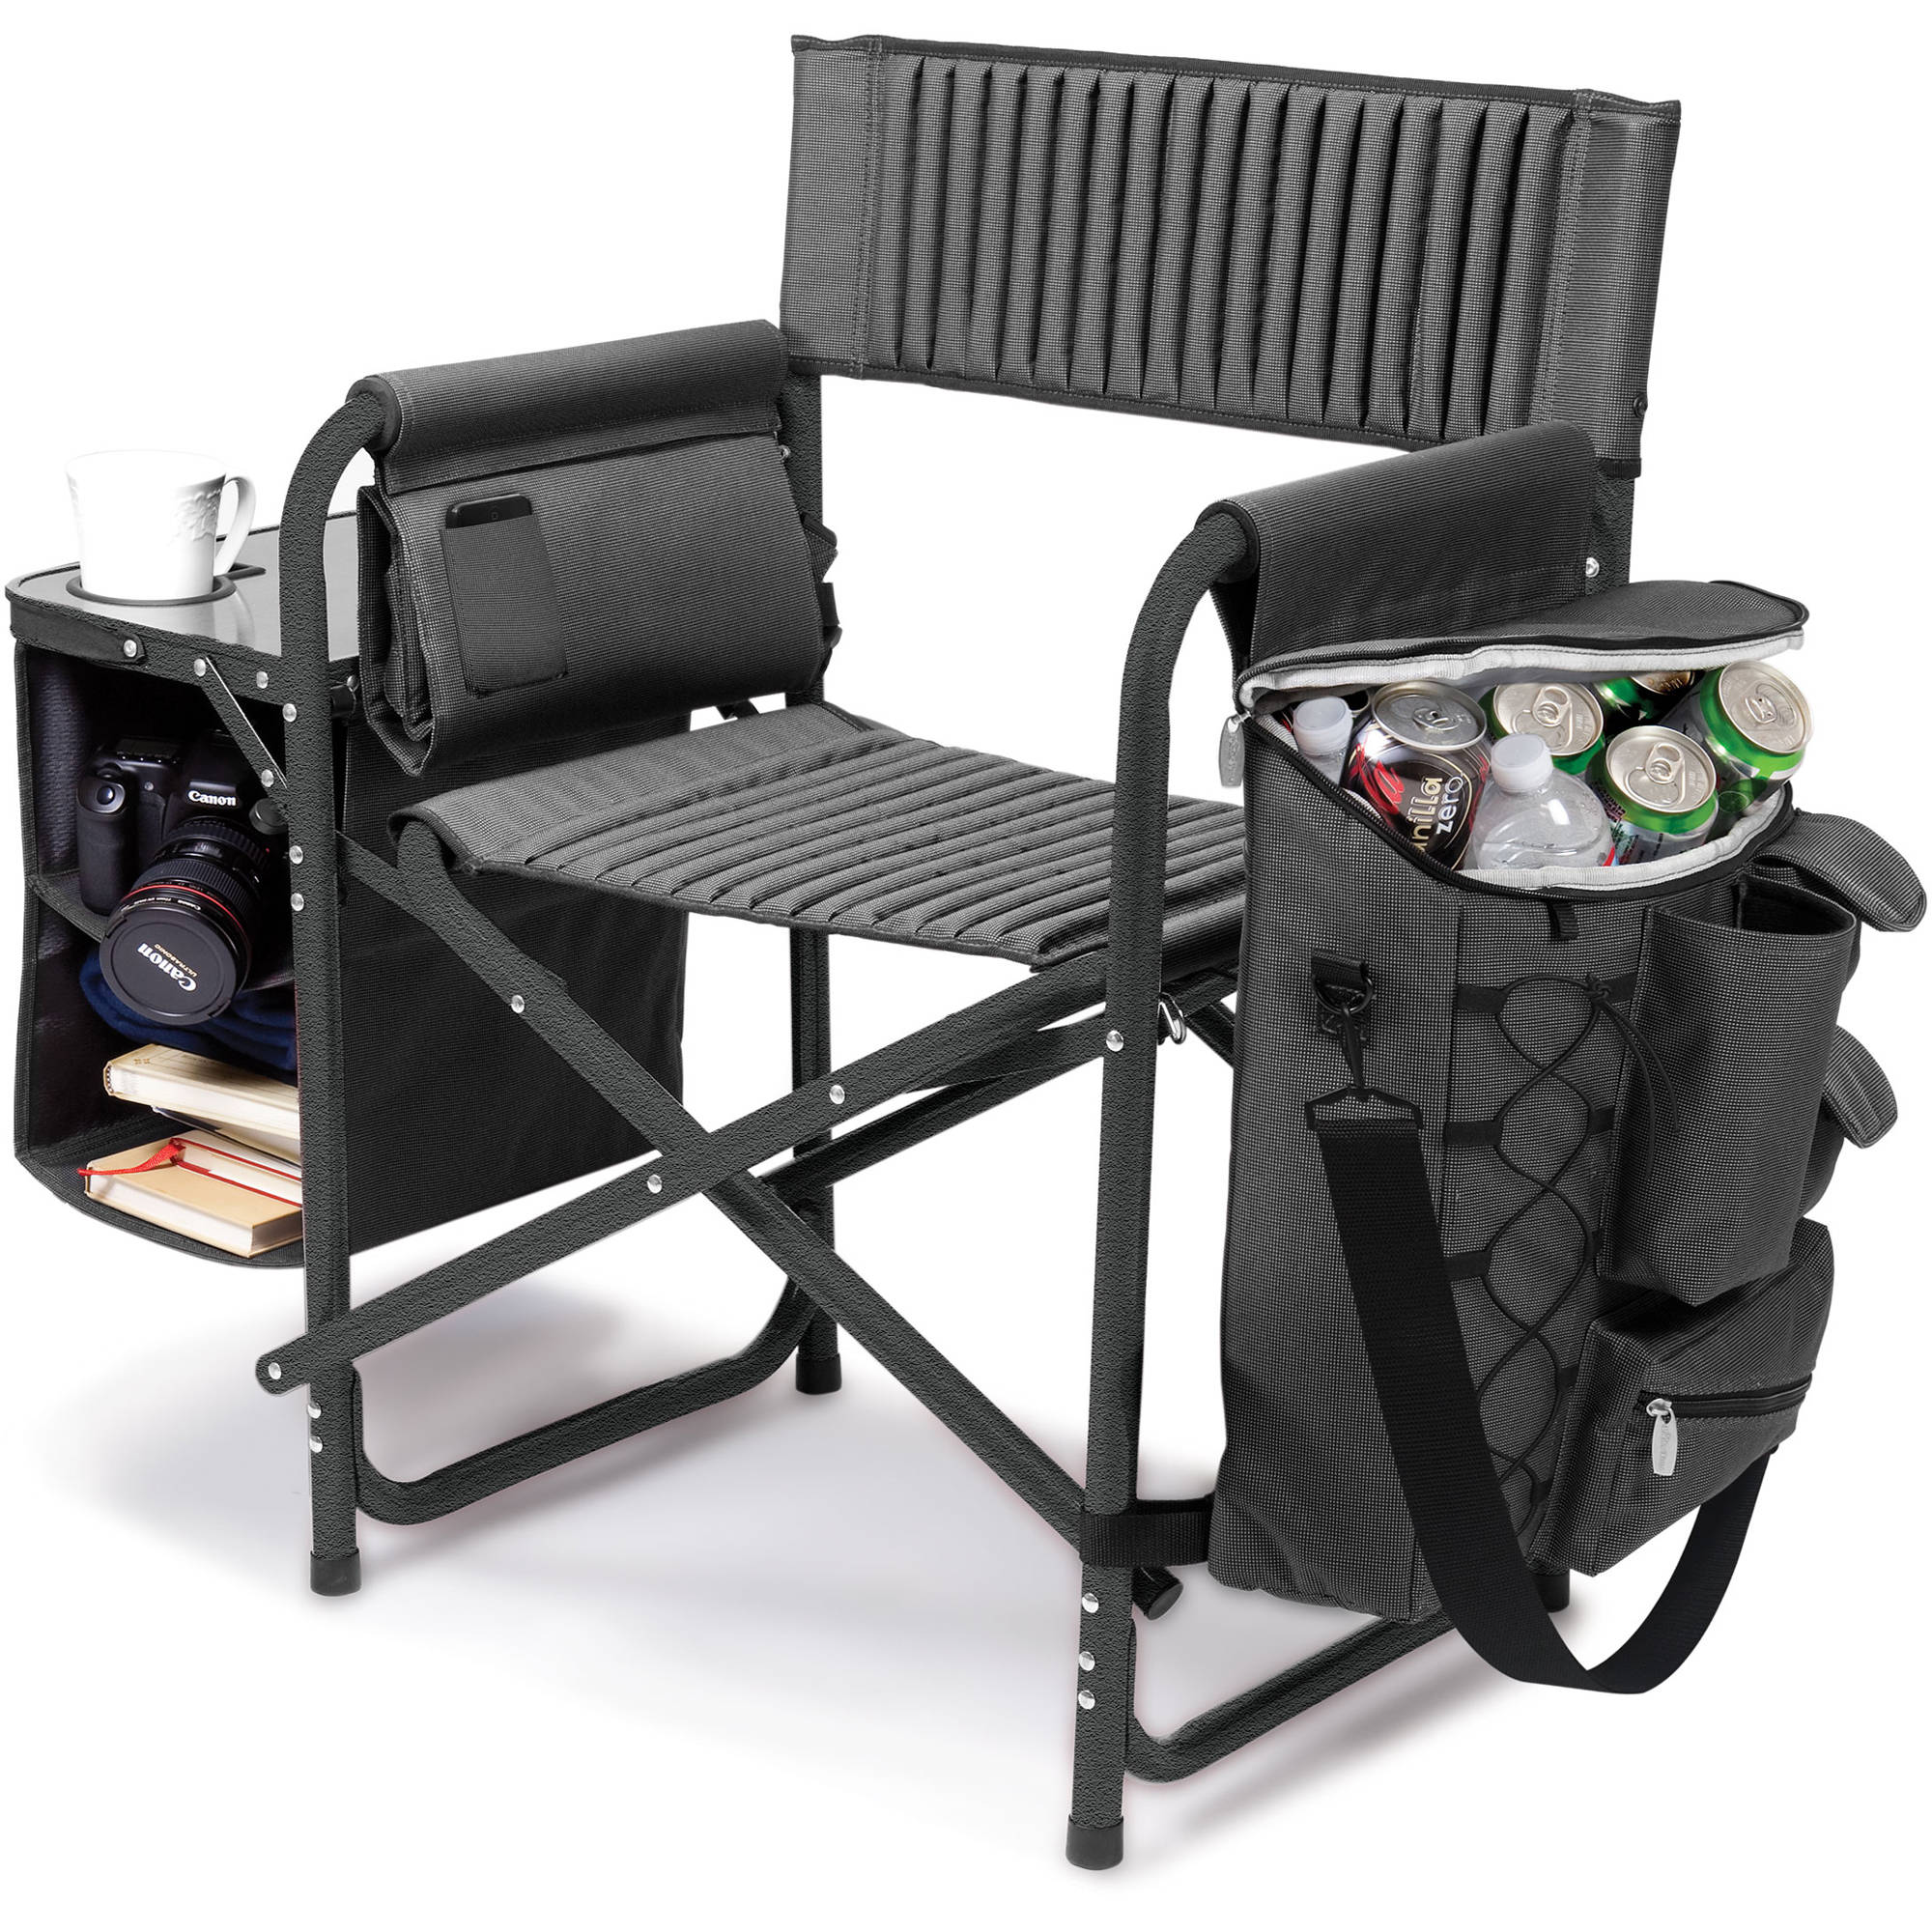 Picnic Time Fusion Camp Chair Dark Gray Black 807 00 679 000 0